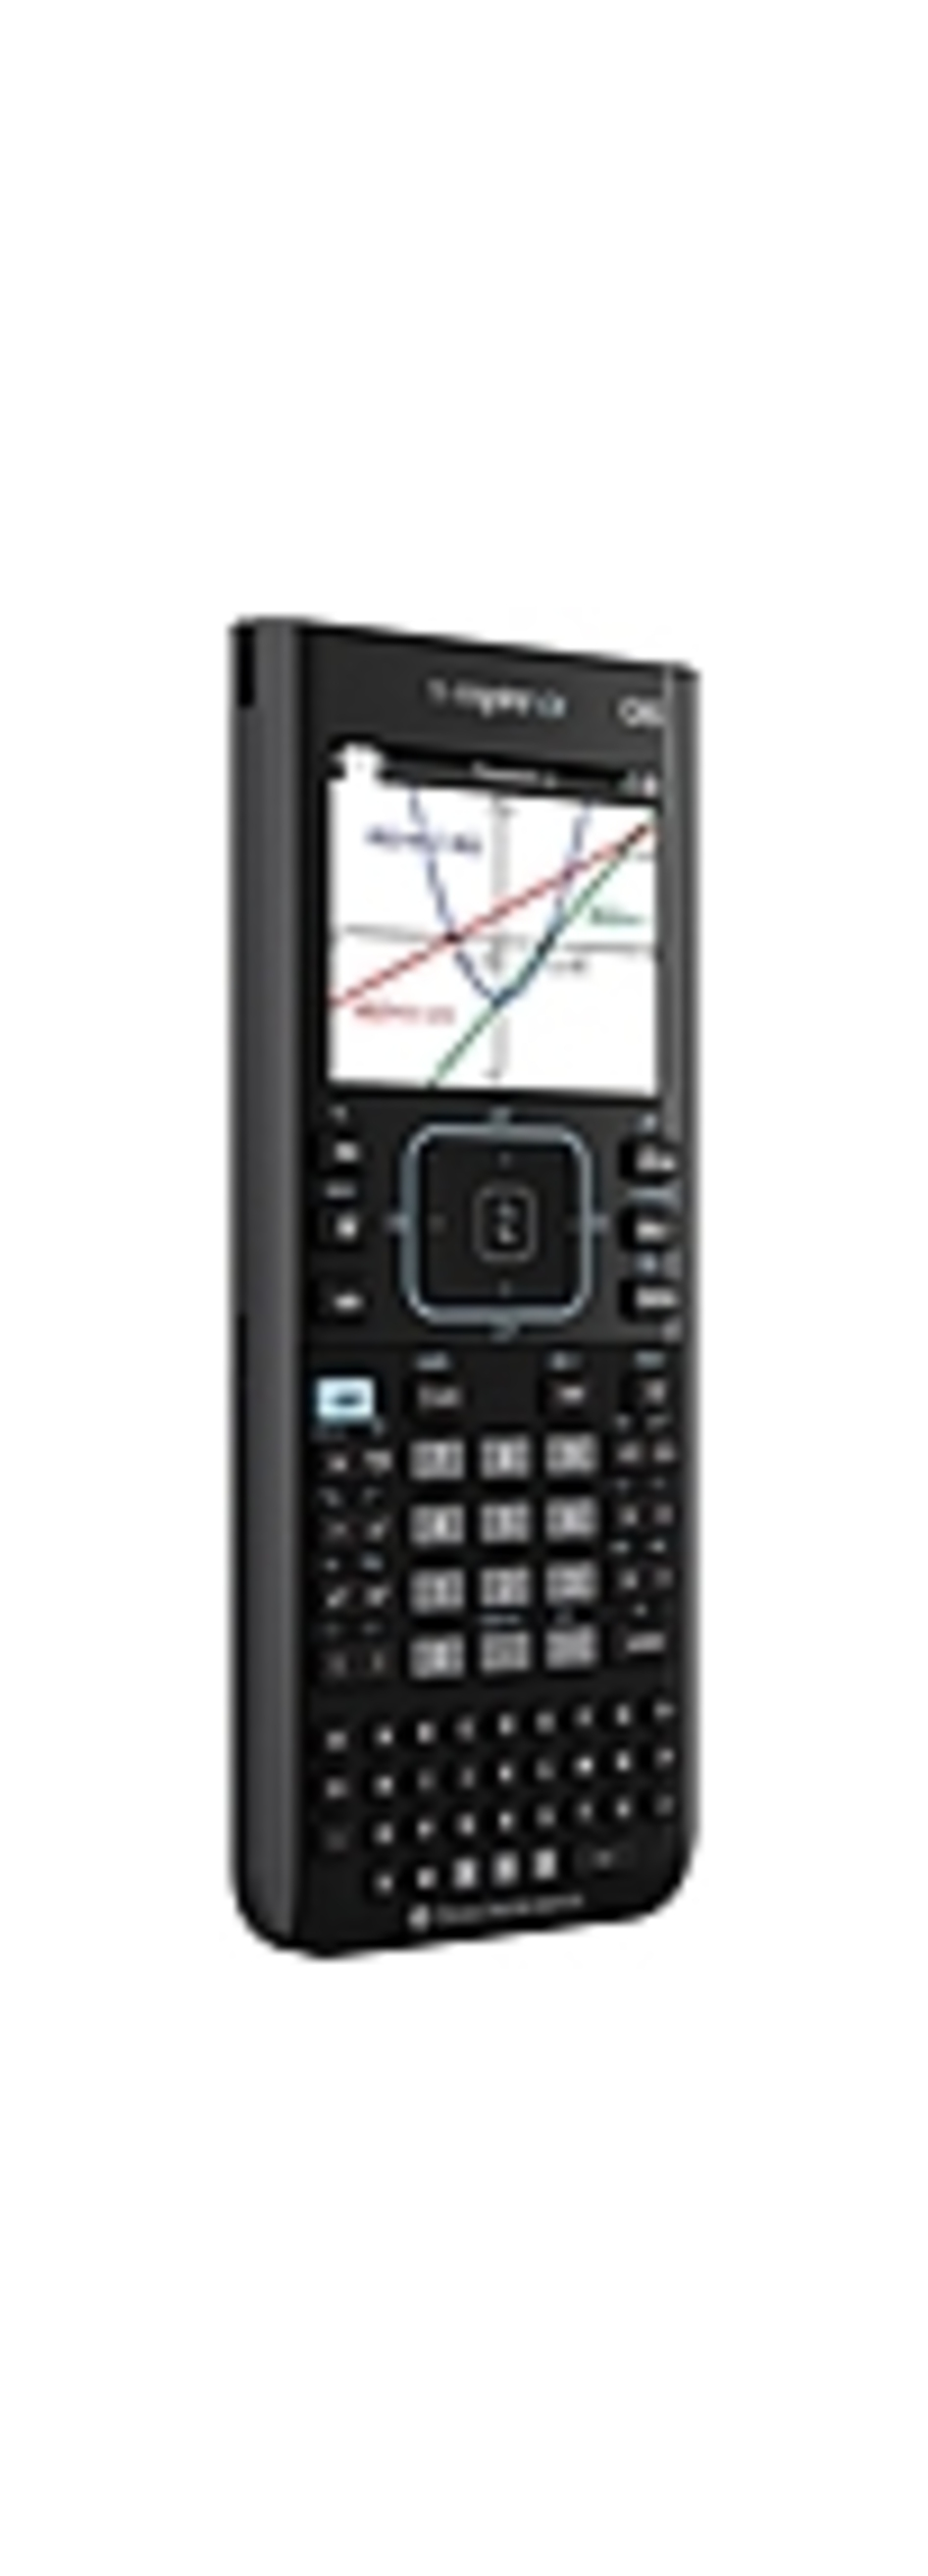 Texas Instruments TI-Nspire CX CAS Handheld - Backlit Display - 64 MB, 100 MB - 3.20""